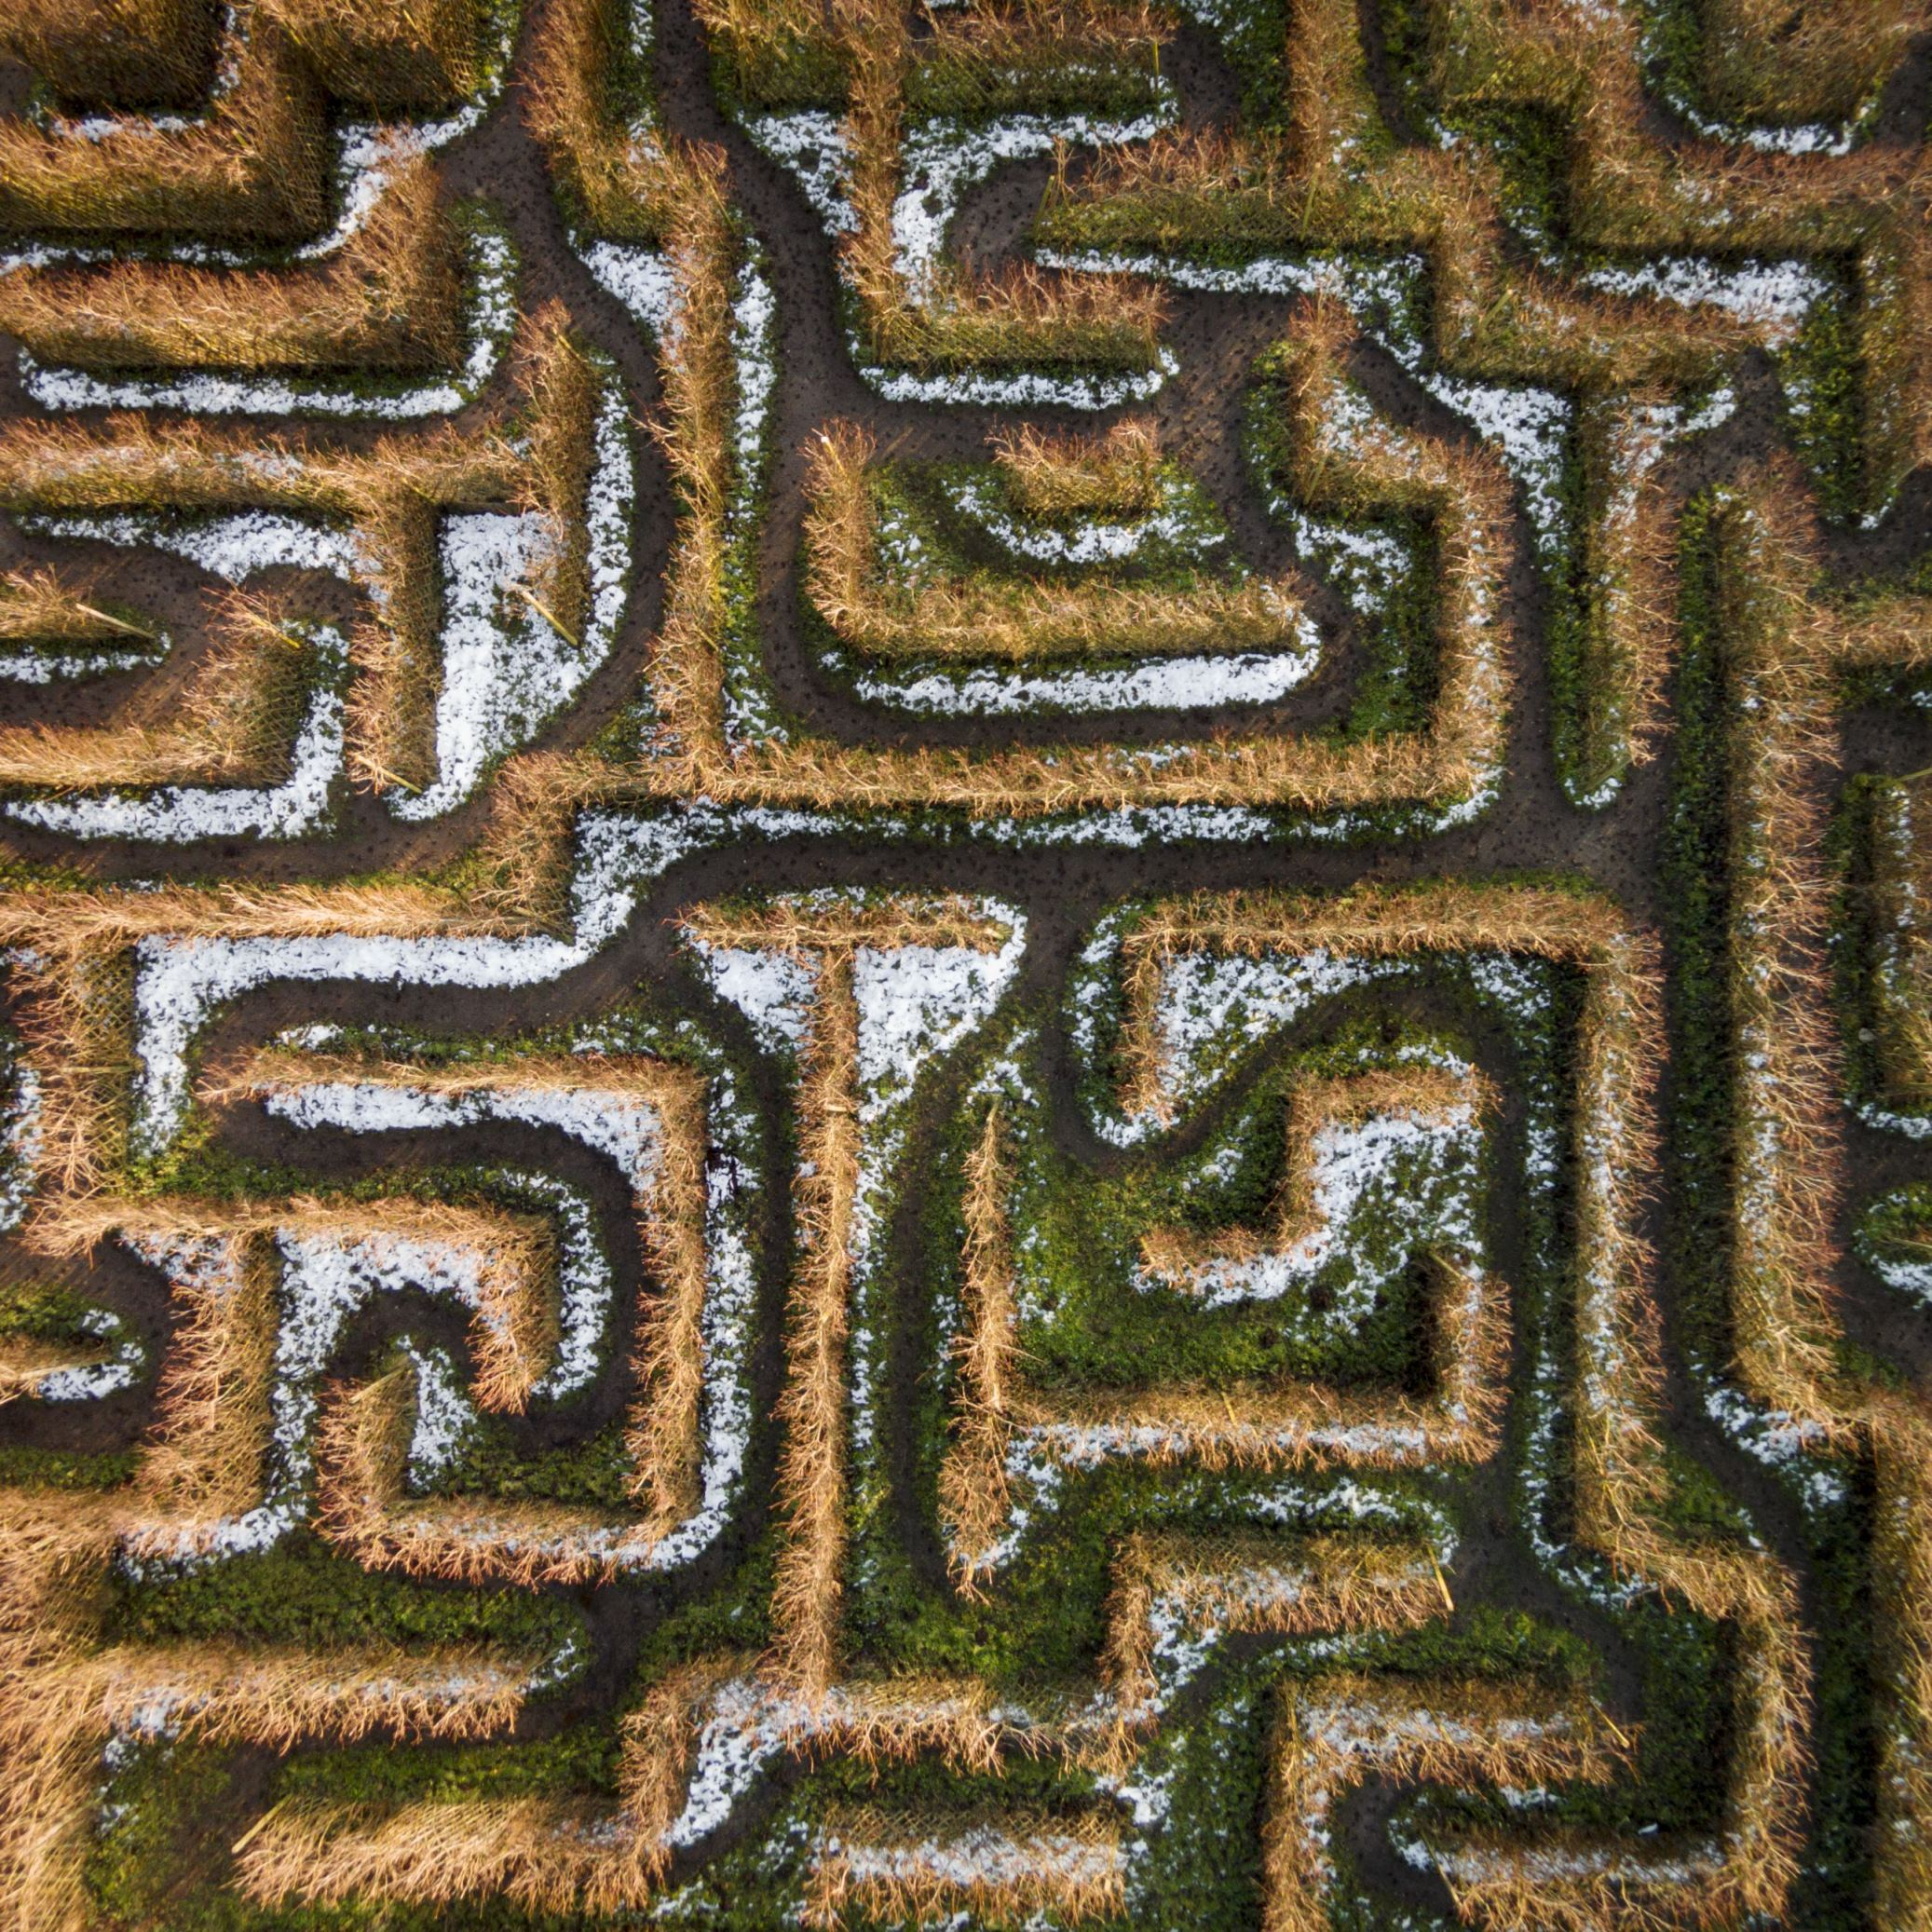 Slide 43 of 100: Labyrinth and maze drone pictures, Lithuania  - 2016 Maze in Anyksciai, Lithuania